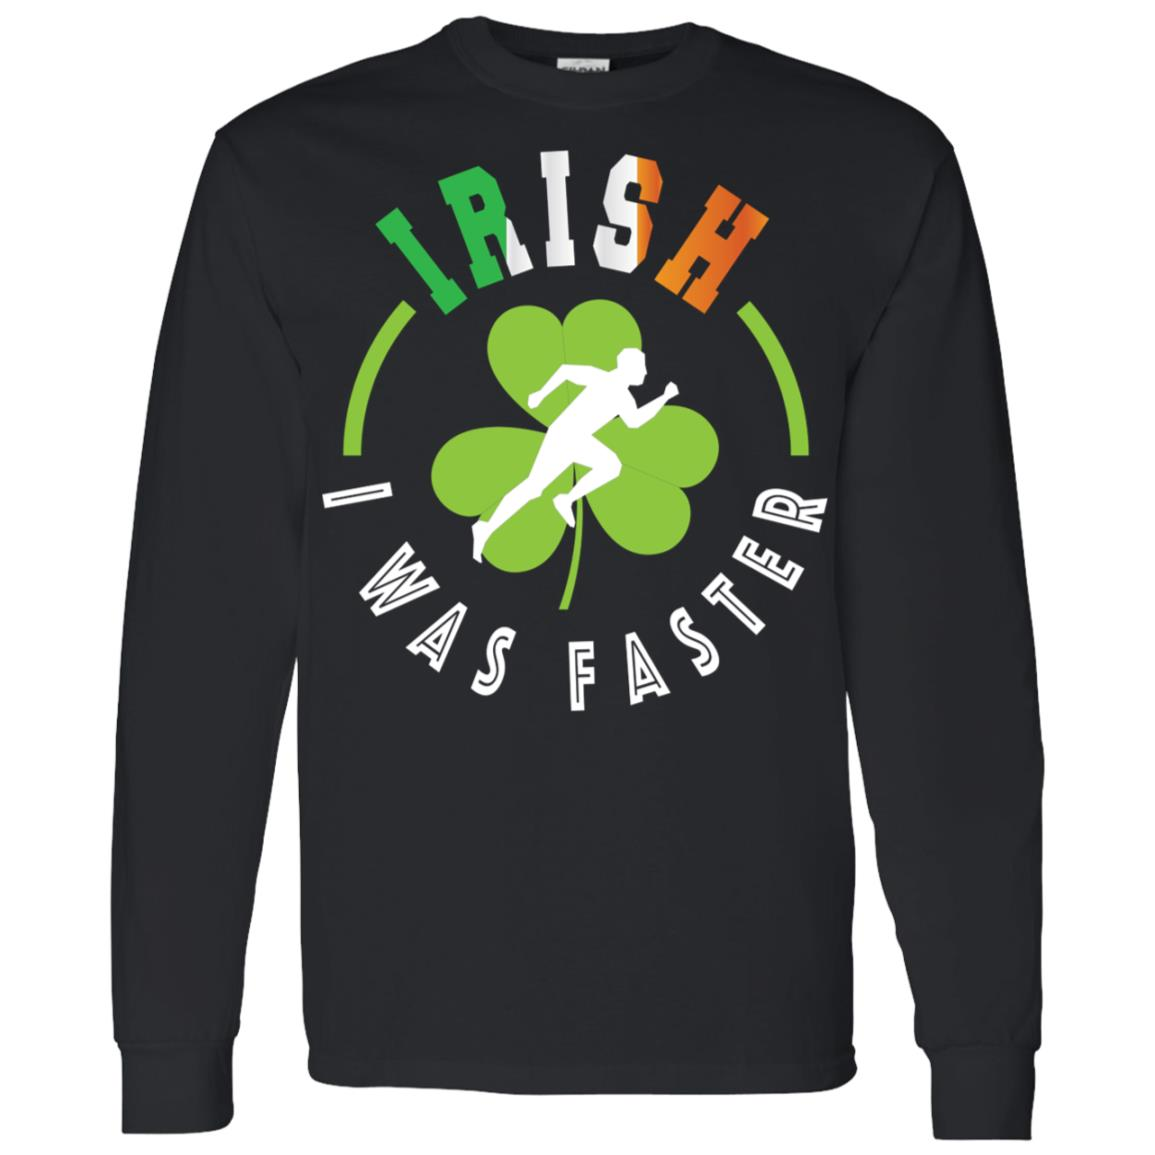 Irish I Was Faster on St. Patricks Day Running Men Long Sleeve T-Shirt